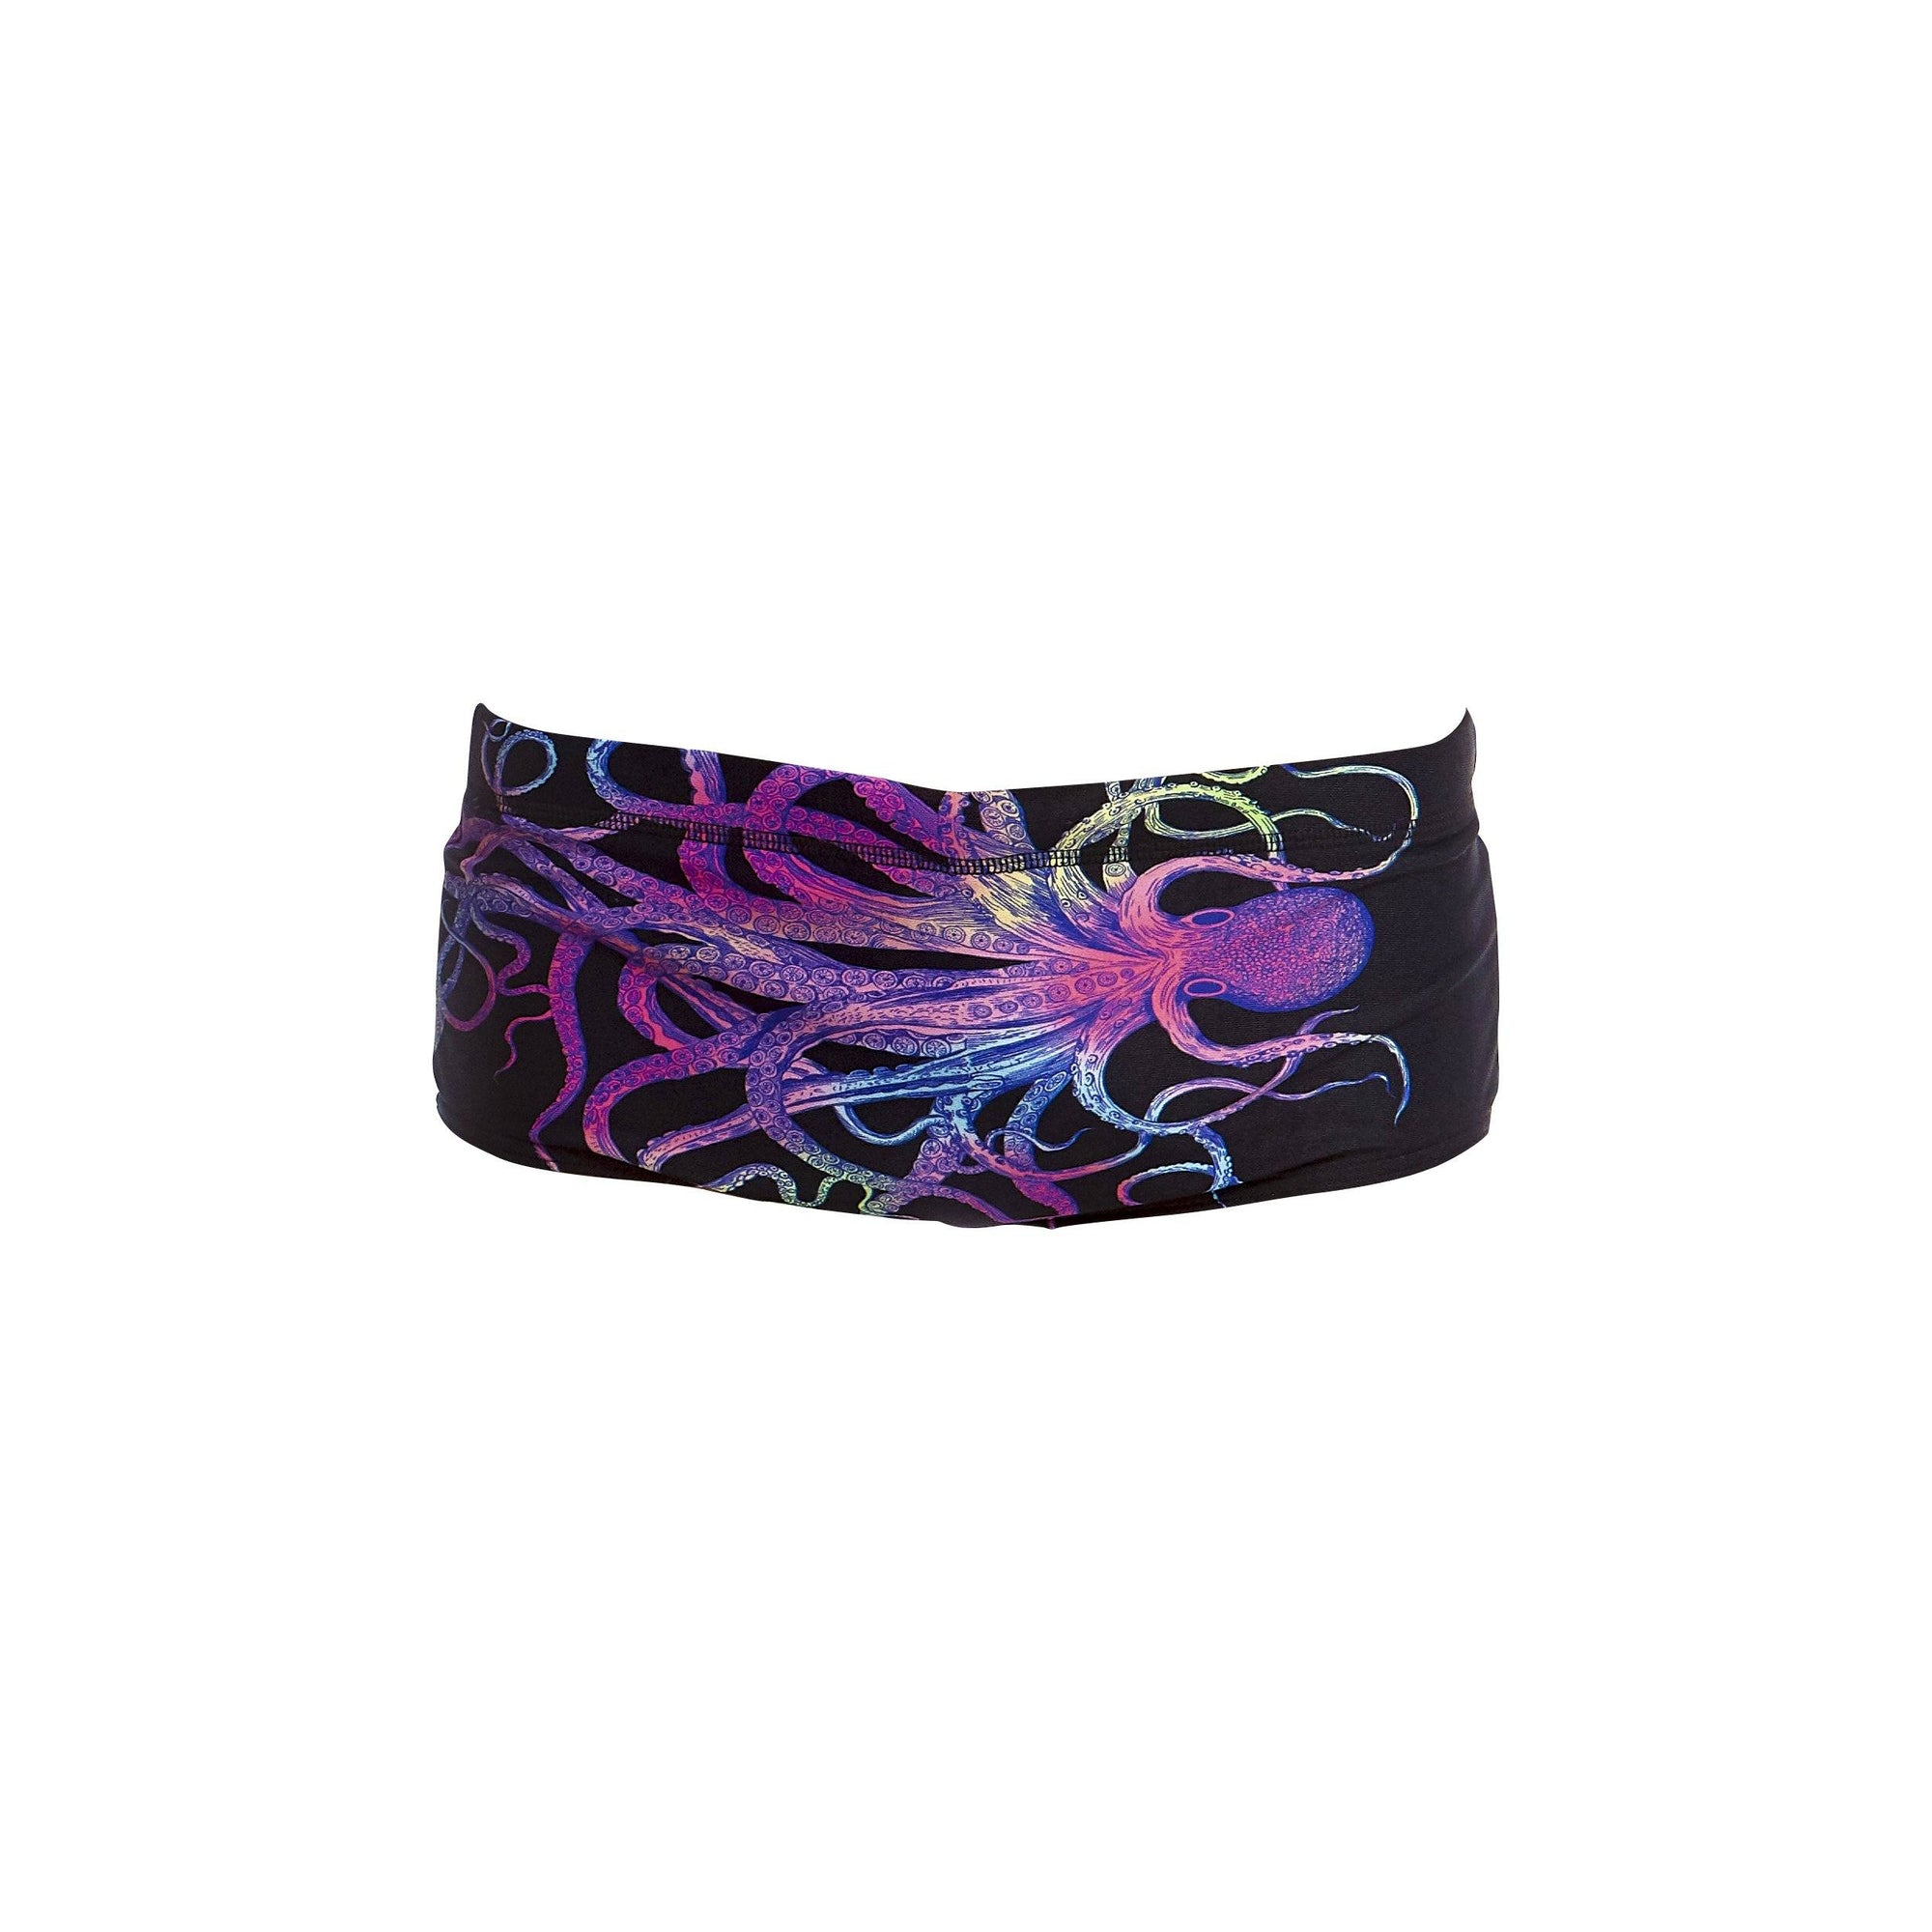 Octopussy Classic Trunks BOYS SWIMWEAR FUNKY TRUNKS